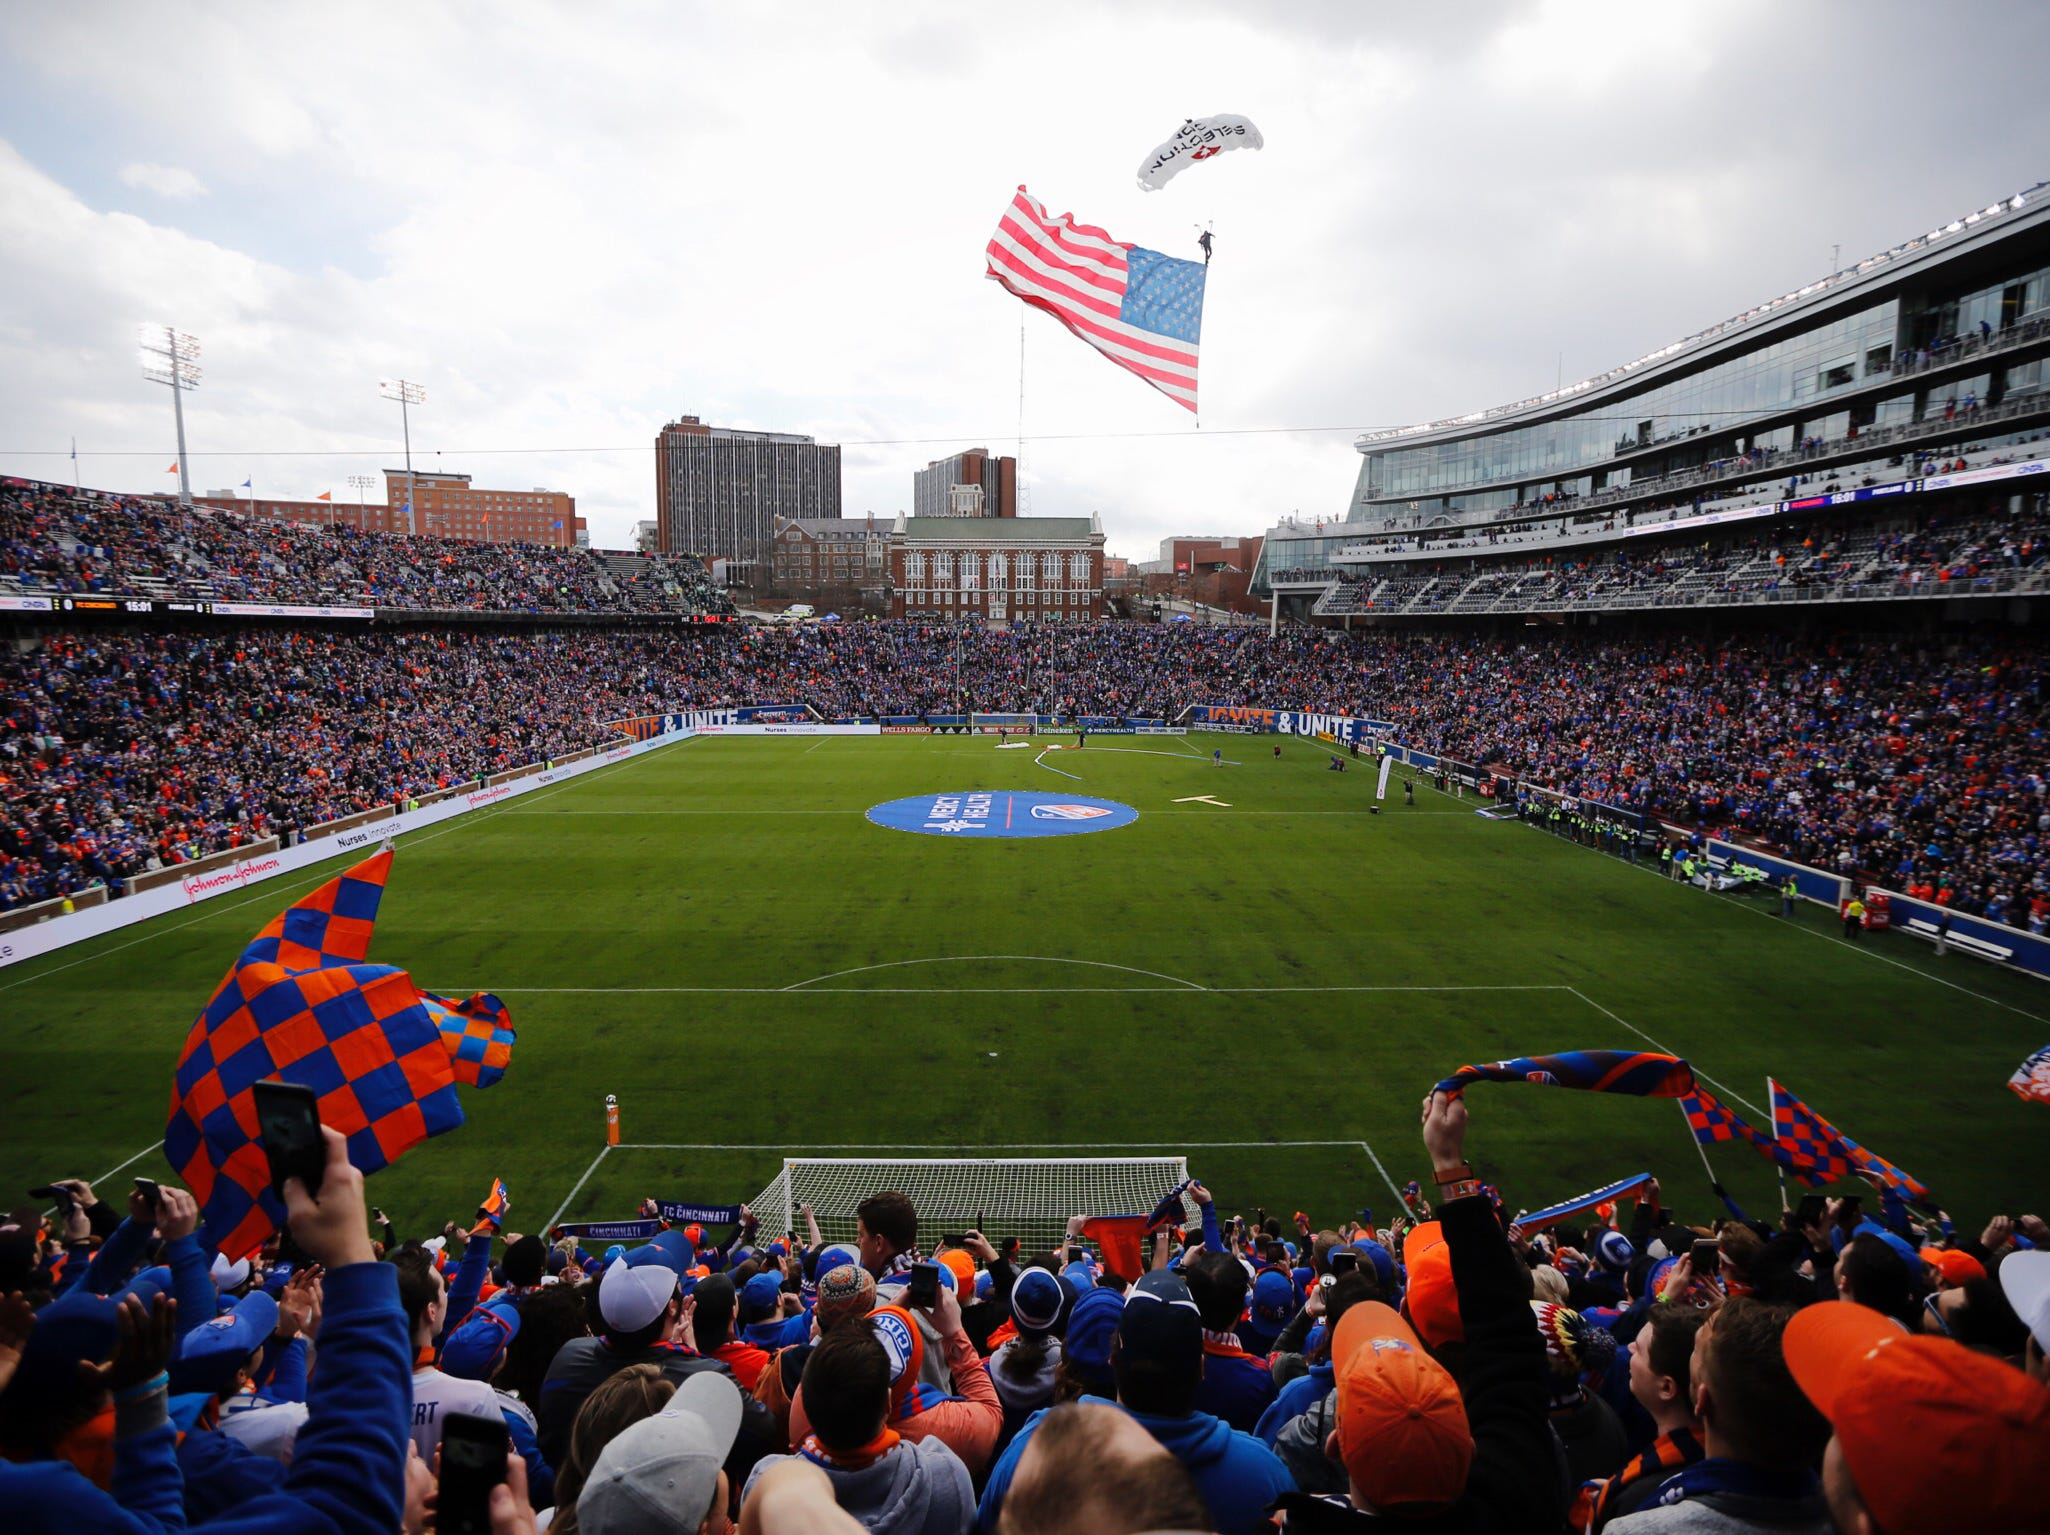 A record capacity crowd of 32,250 attends the MLS match between FC Cincinnati and Portland Timbers on Sunday, March 17, 2019, at Nippert Stadium in Cincinnati.